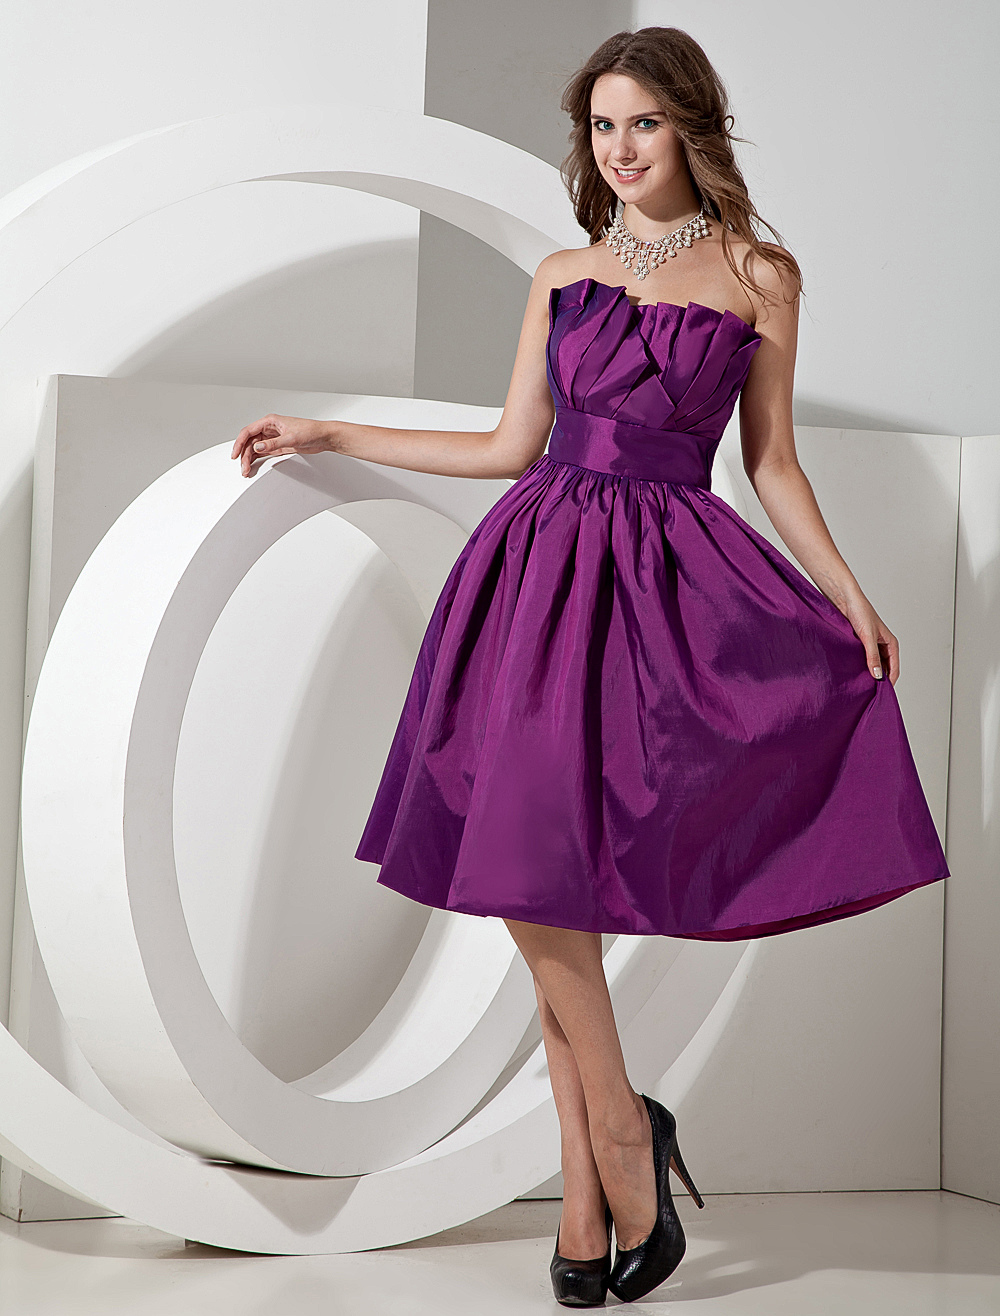 Lilac Taffeta Knee Length Strapless A-line Bridesmaid Dress